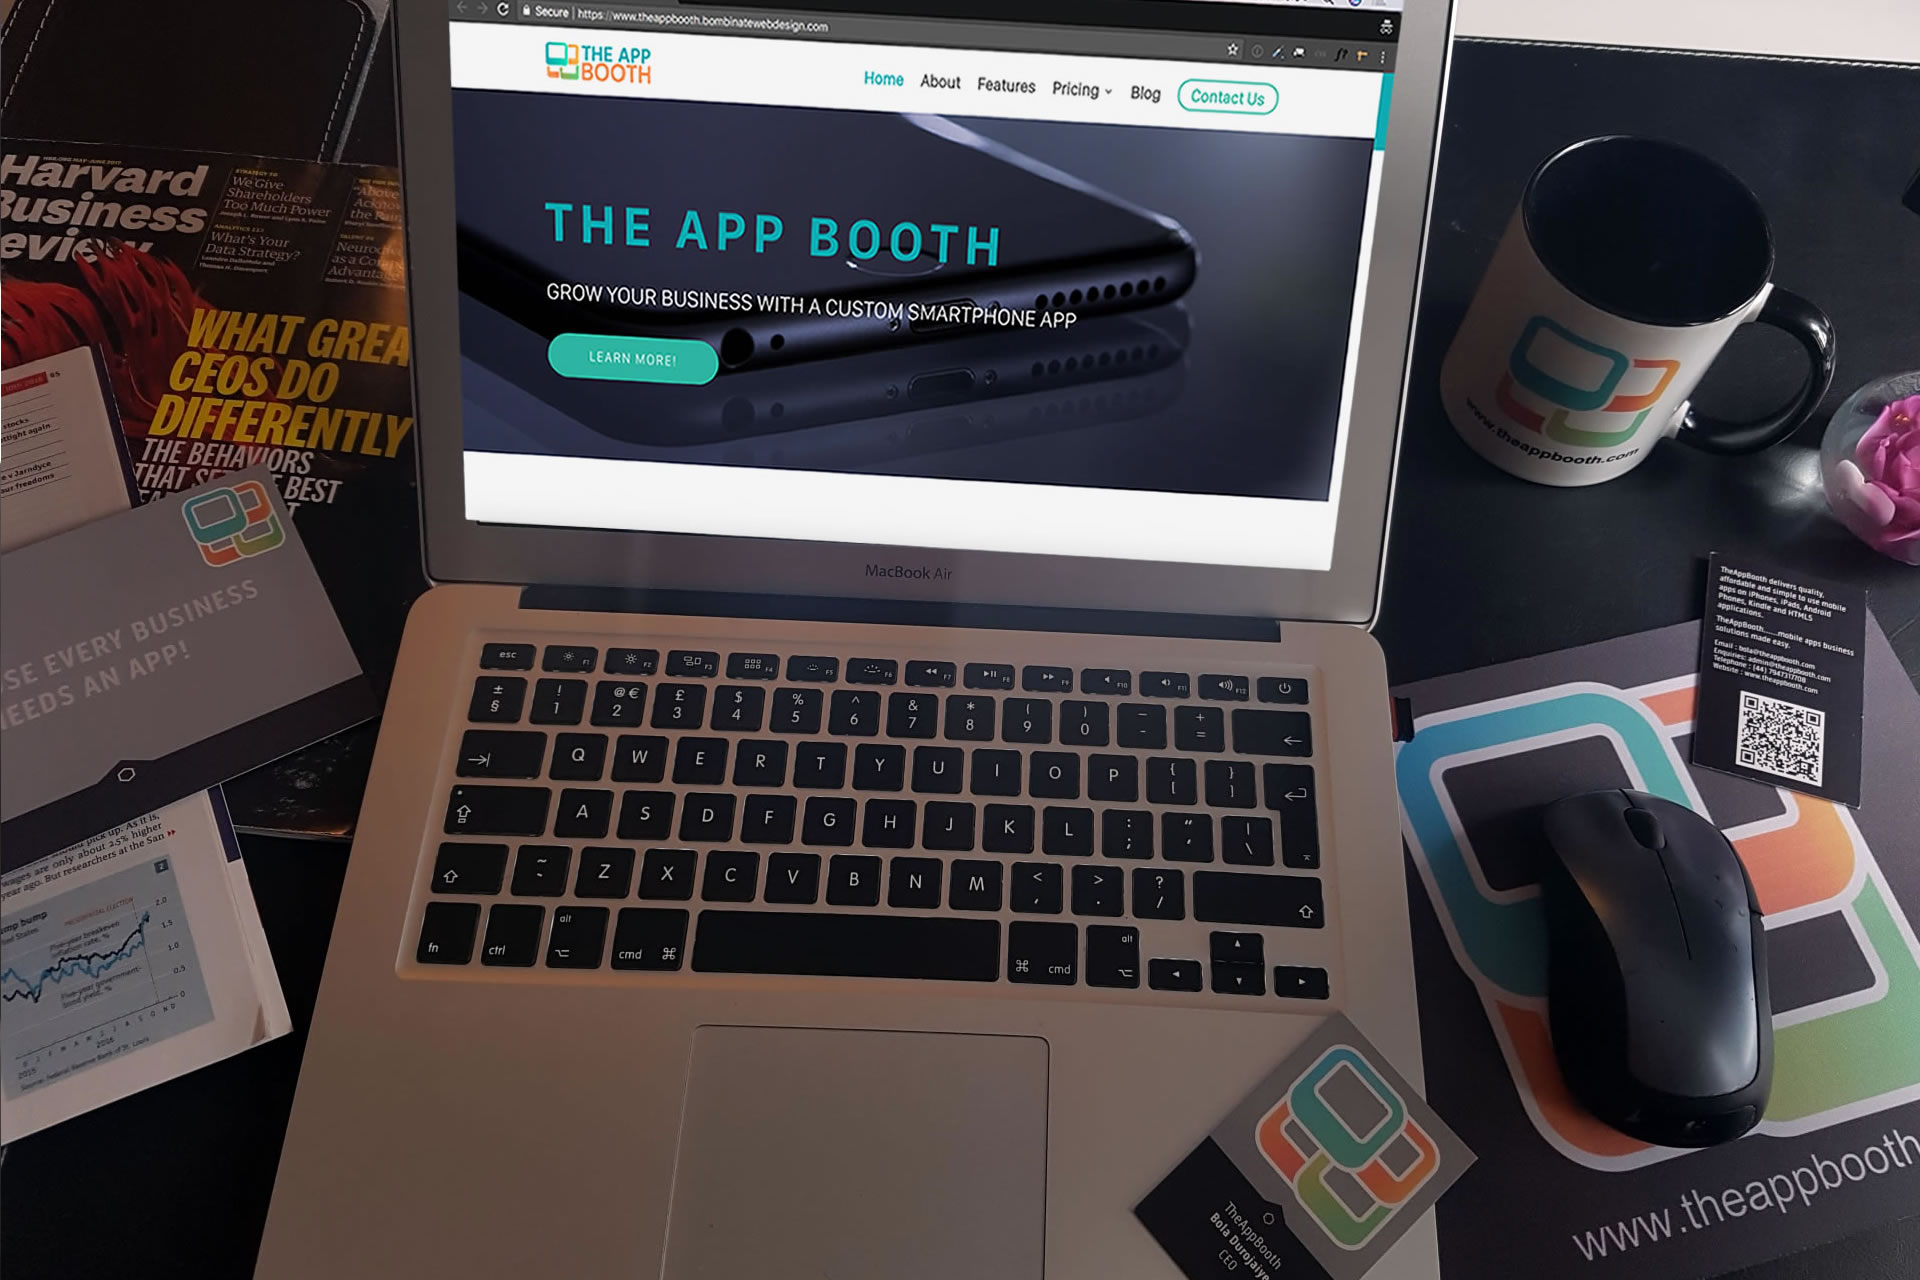 The App Booth! We build high quality affordable mobile apps!